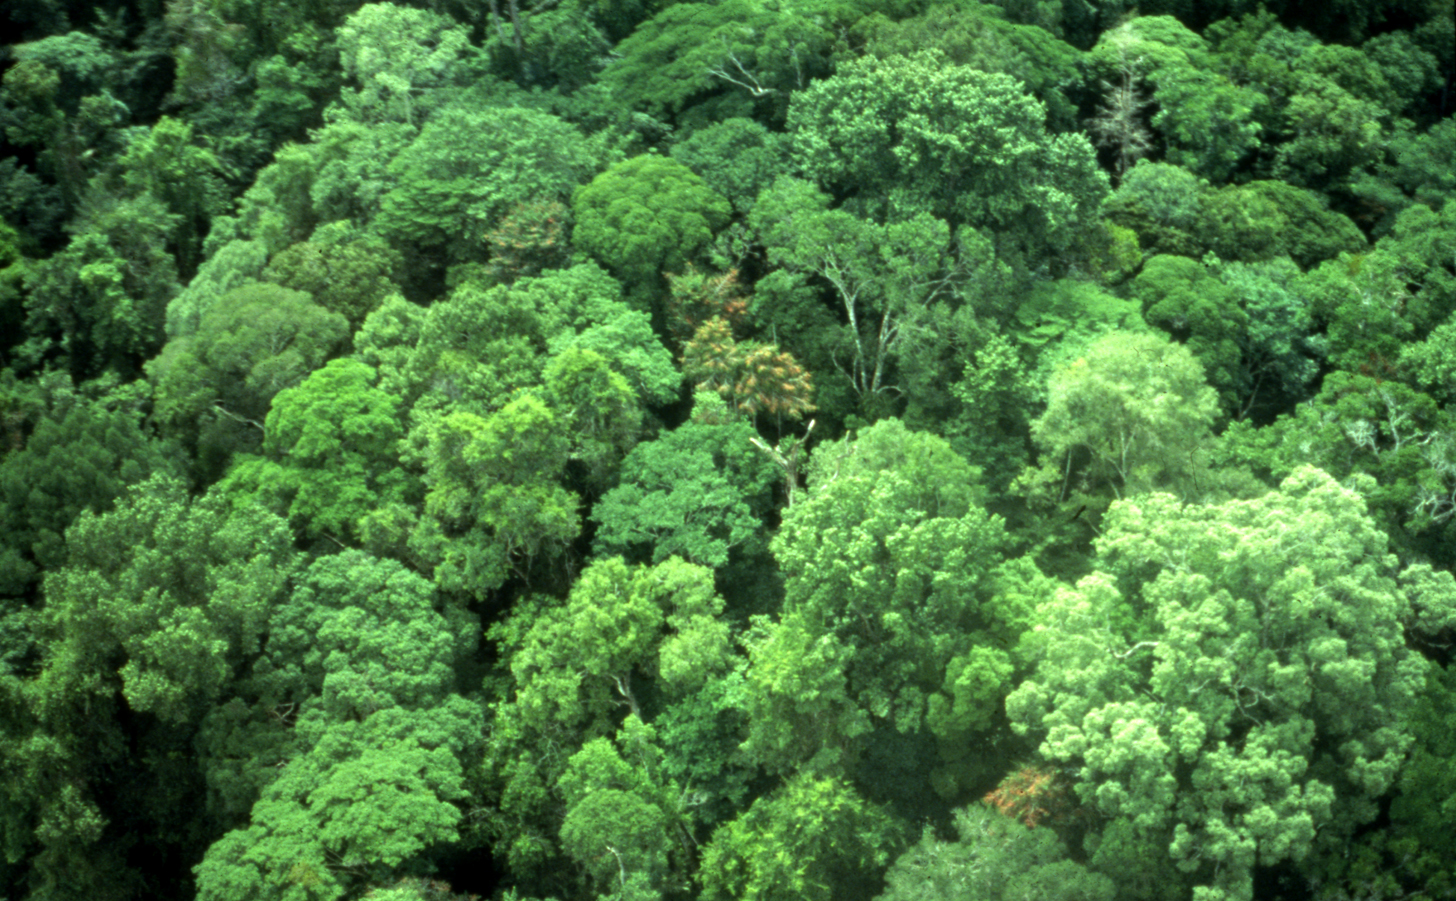 Politics and its Discontents: Distinguishing The Forest From